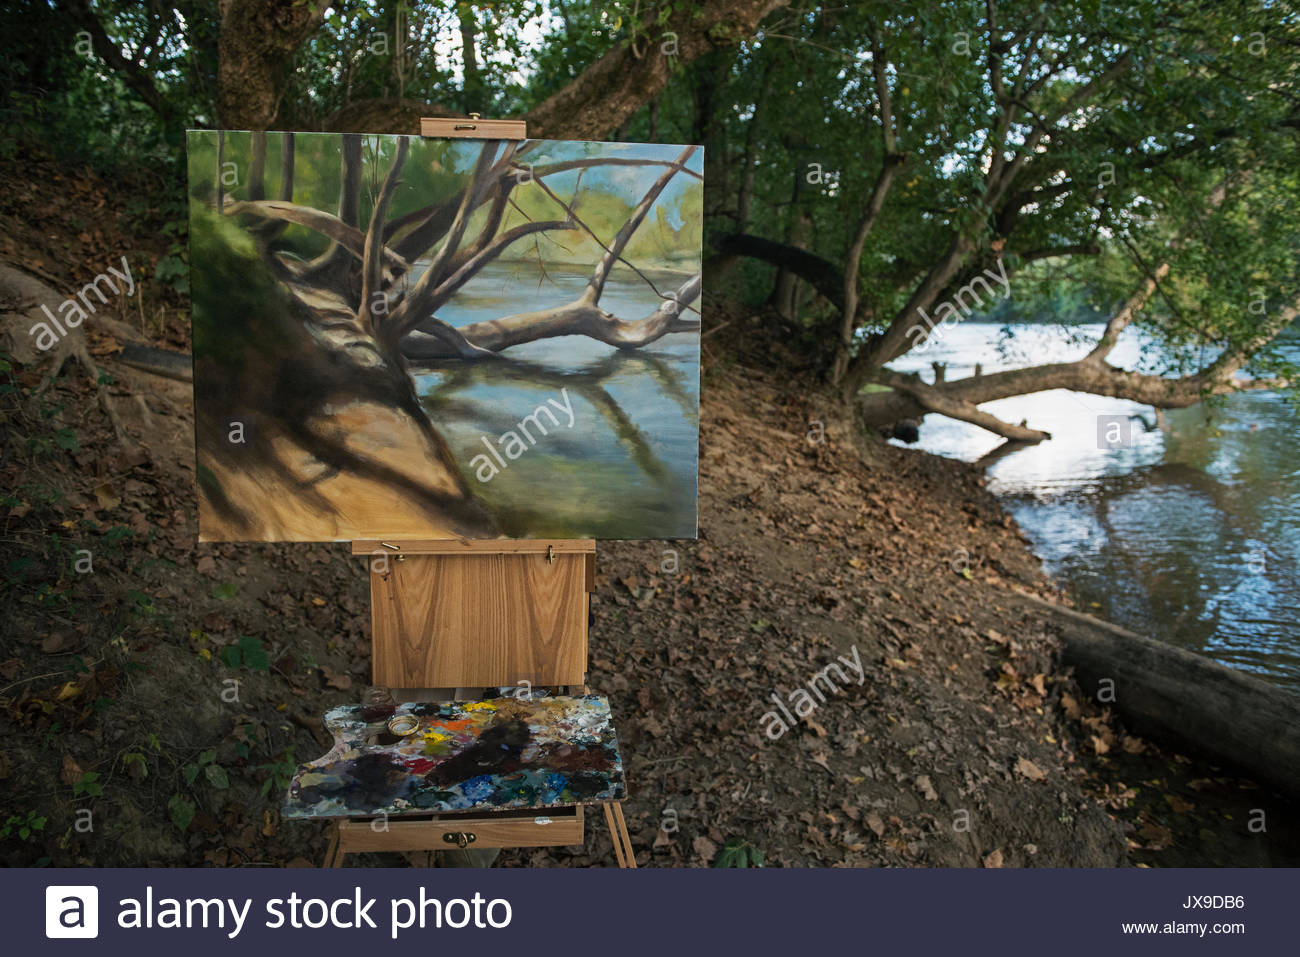 A plein air painting along the banks of the French Broad River. - Stock Image